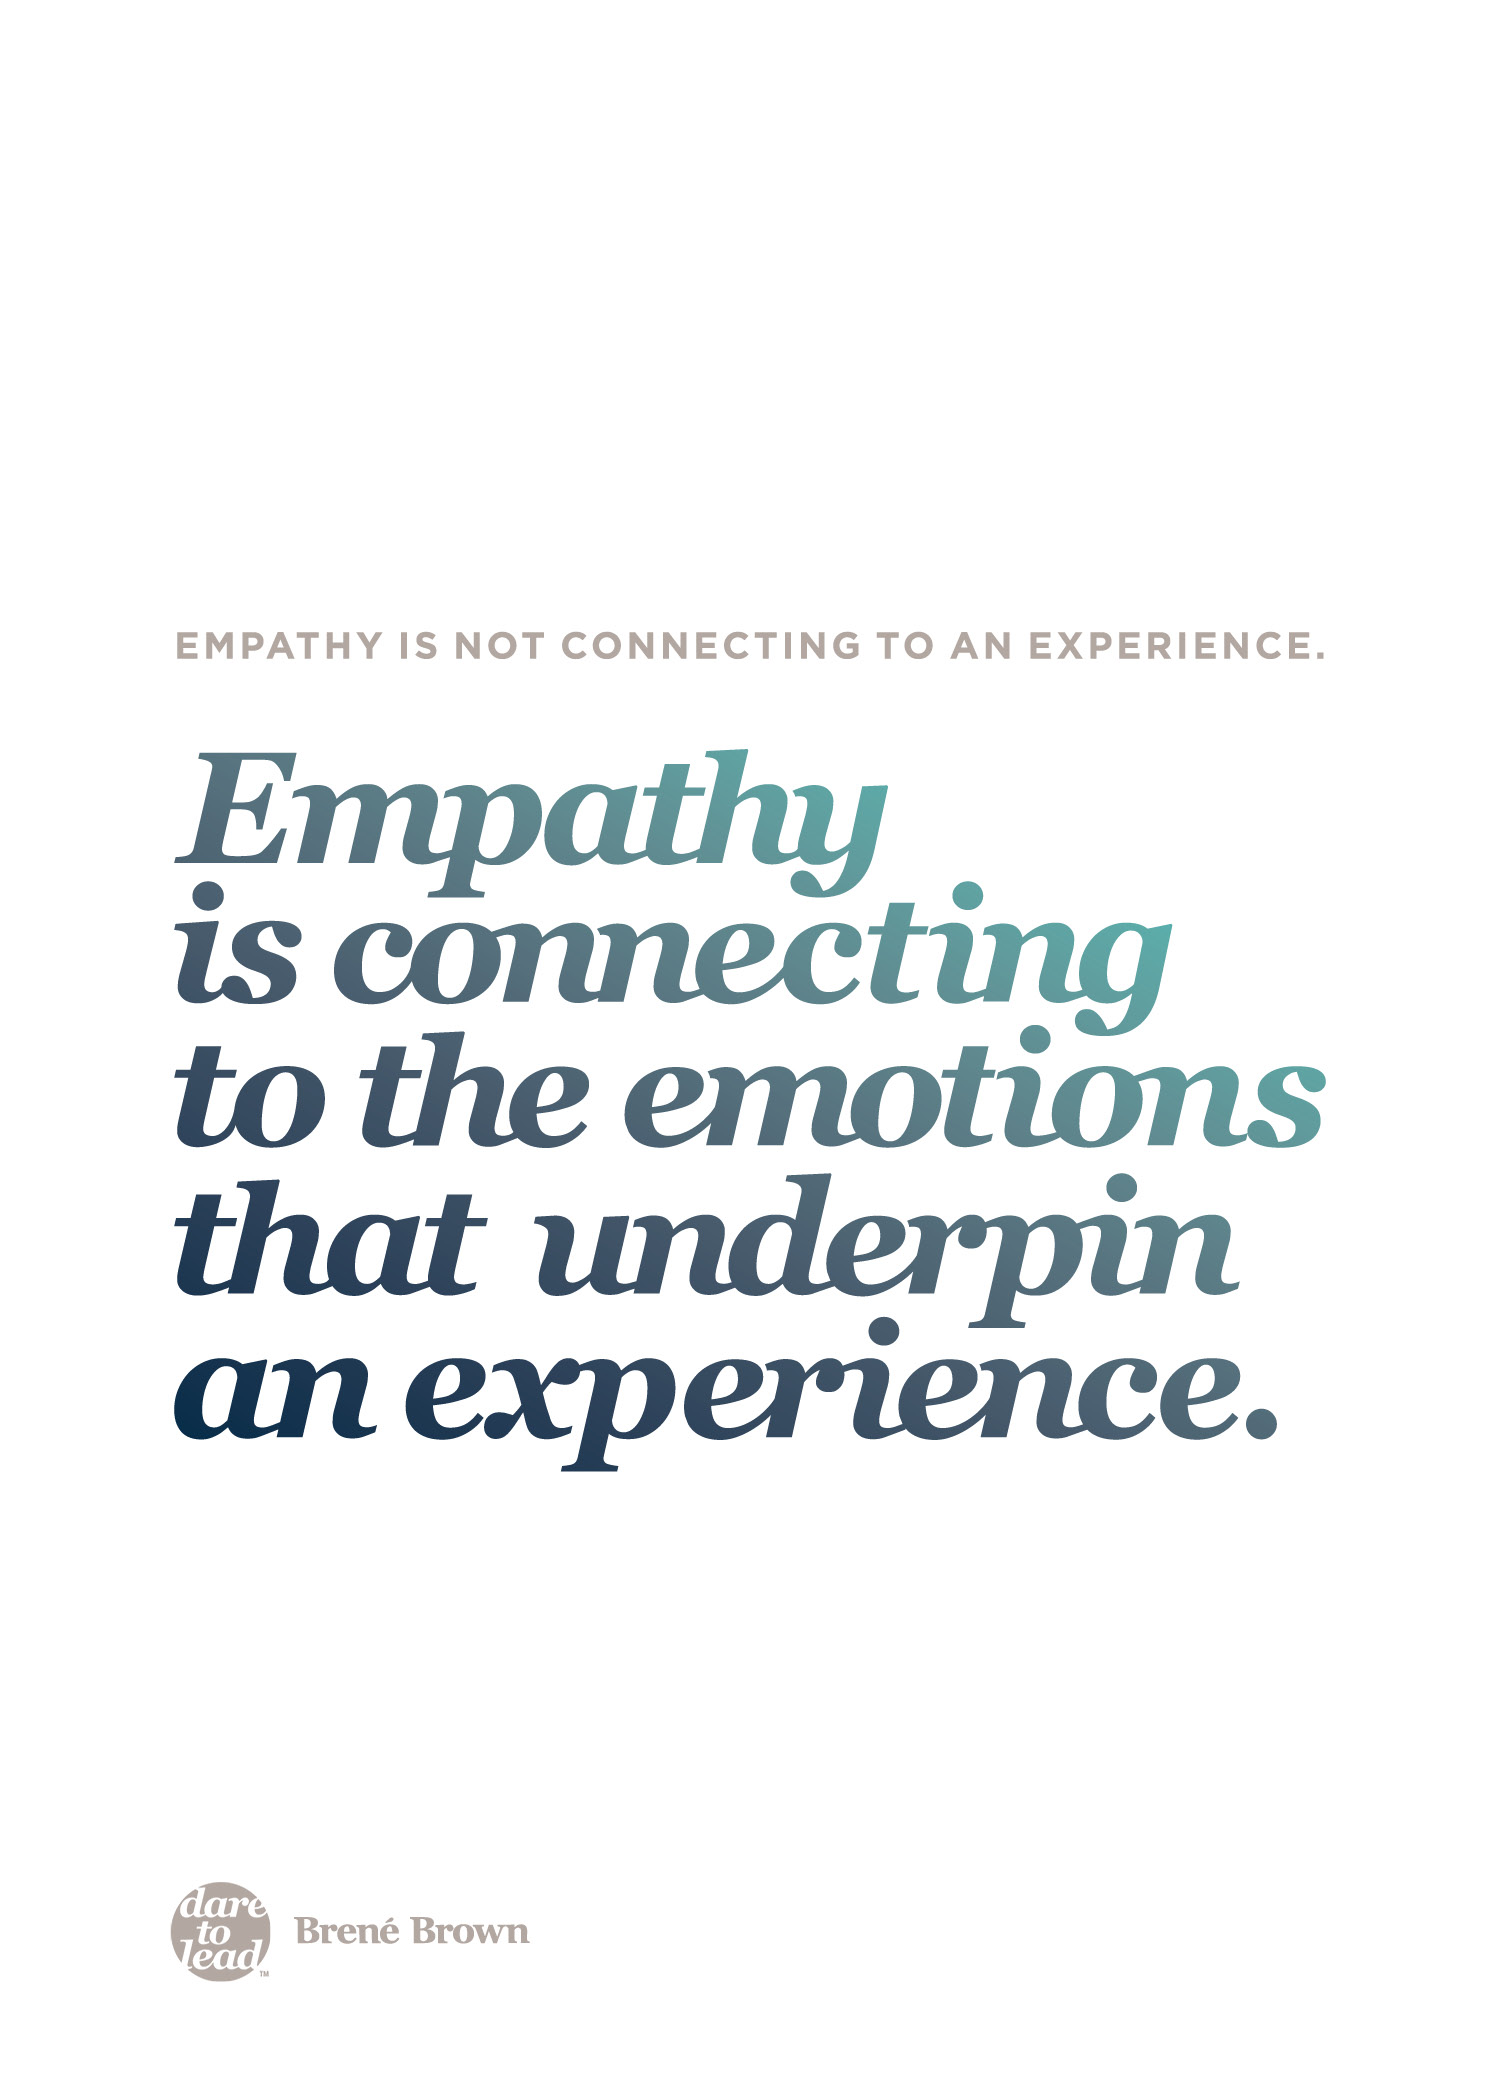 """Empathy is not connecting to an experience. Empathy is connecting to the emotions that underpin an experience."" - Brené Brown"